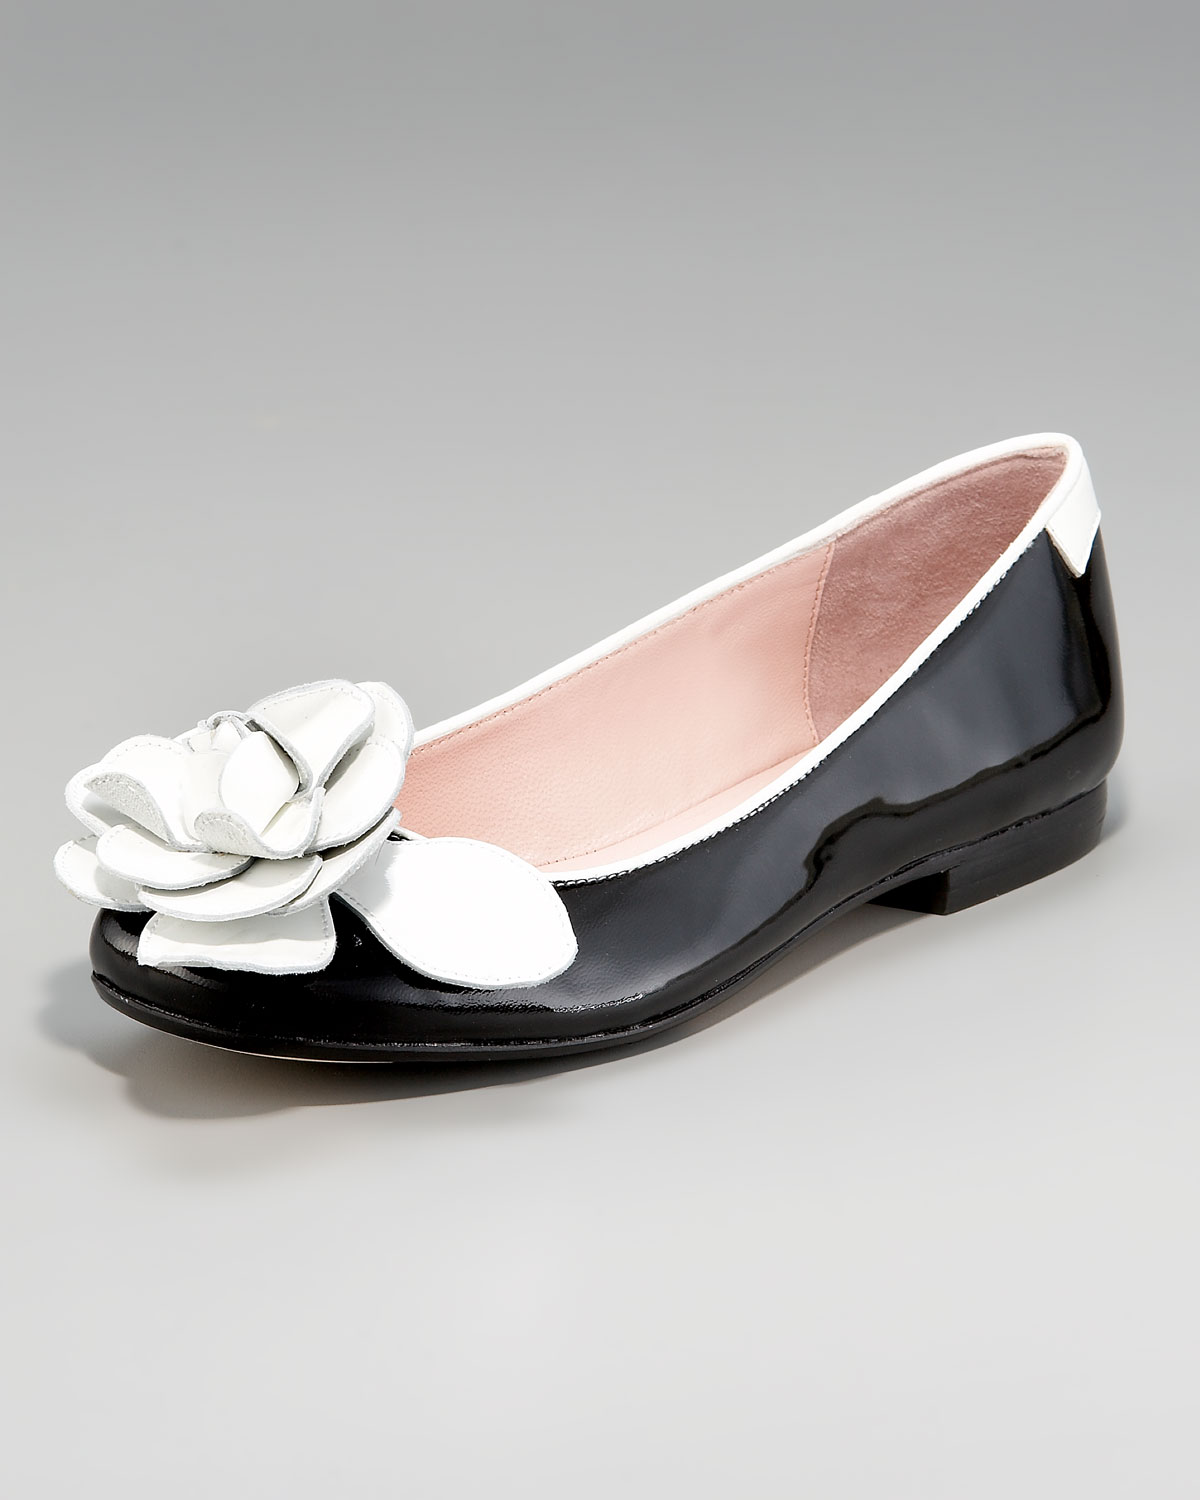 clearance online fake sale best sale Taryn Rose Embellished Satin Flats prices online ALr4CC